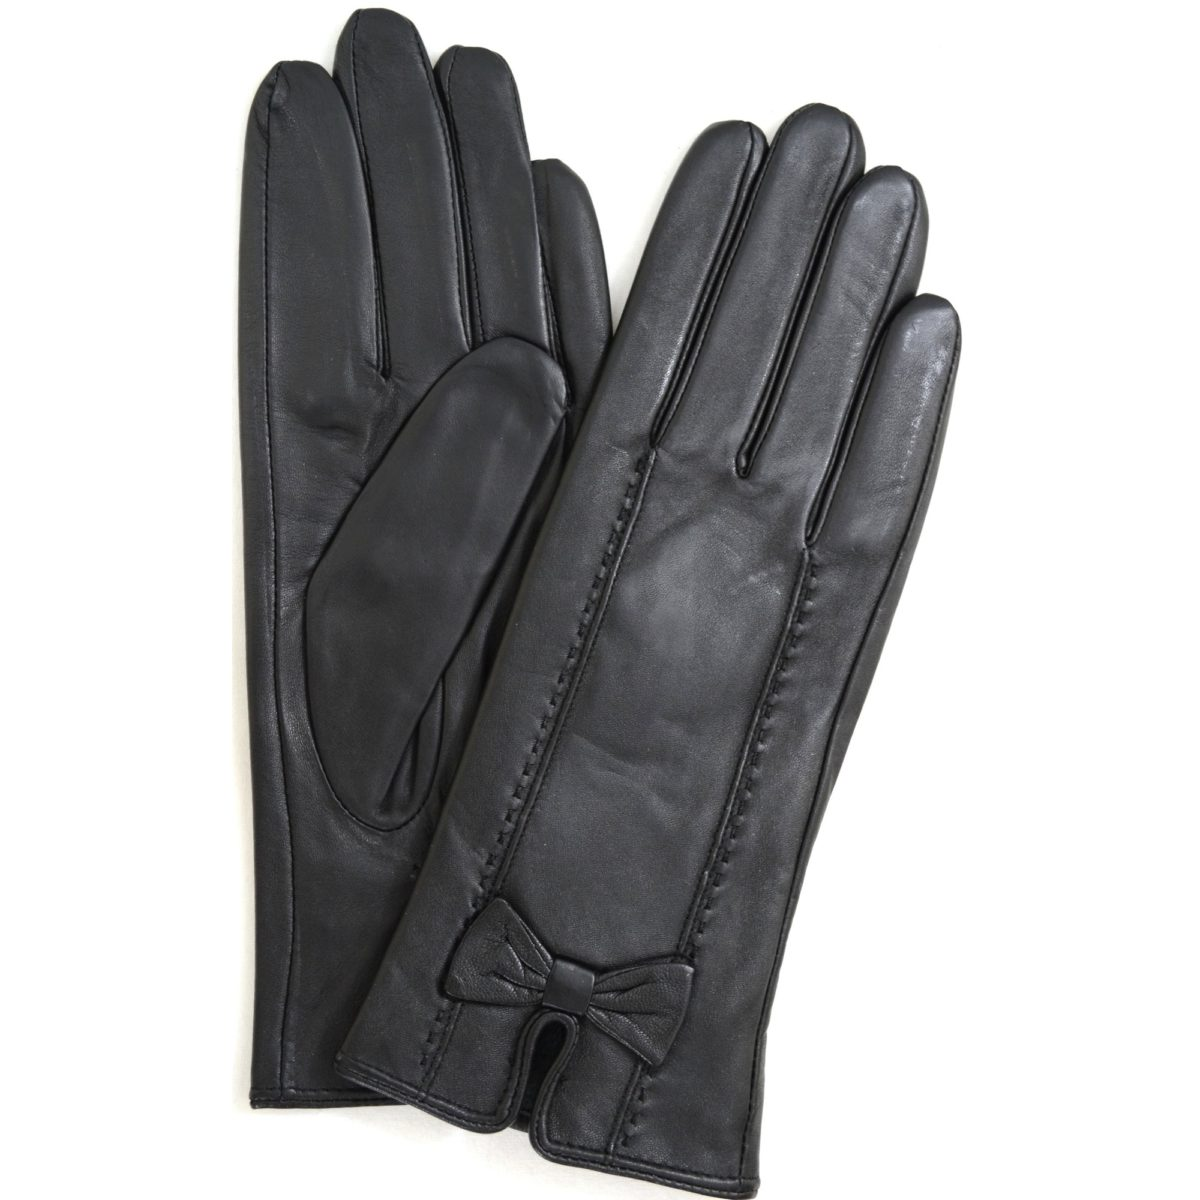 Alwen - Leather Gloves with Bow Design - Black